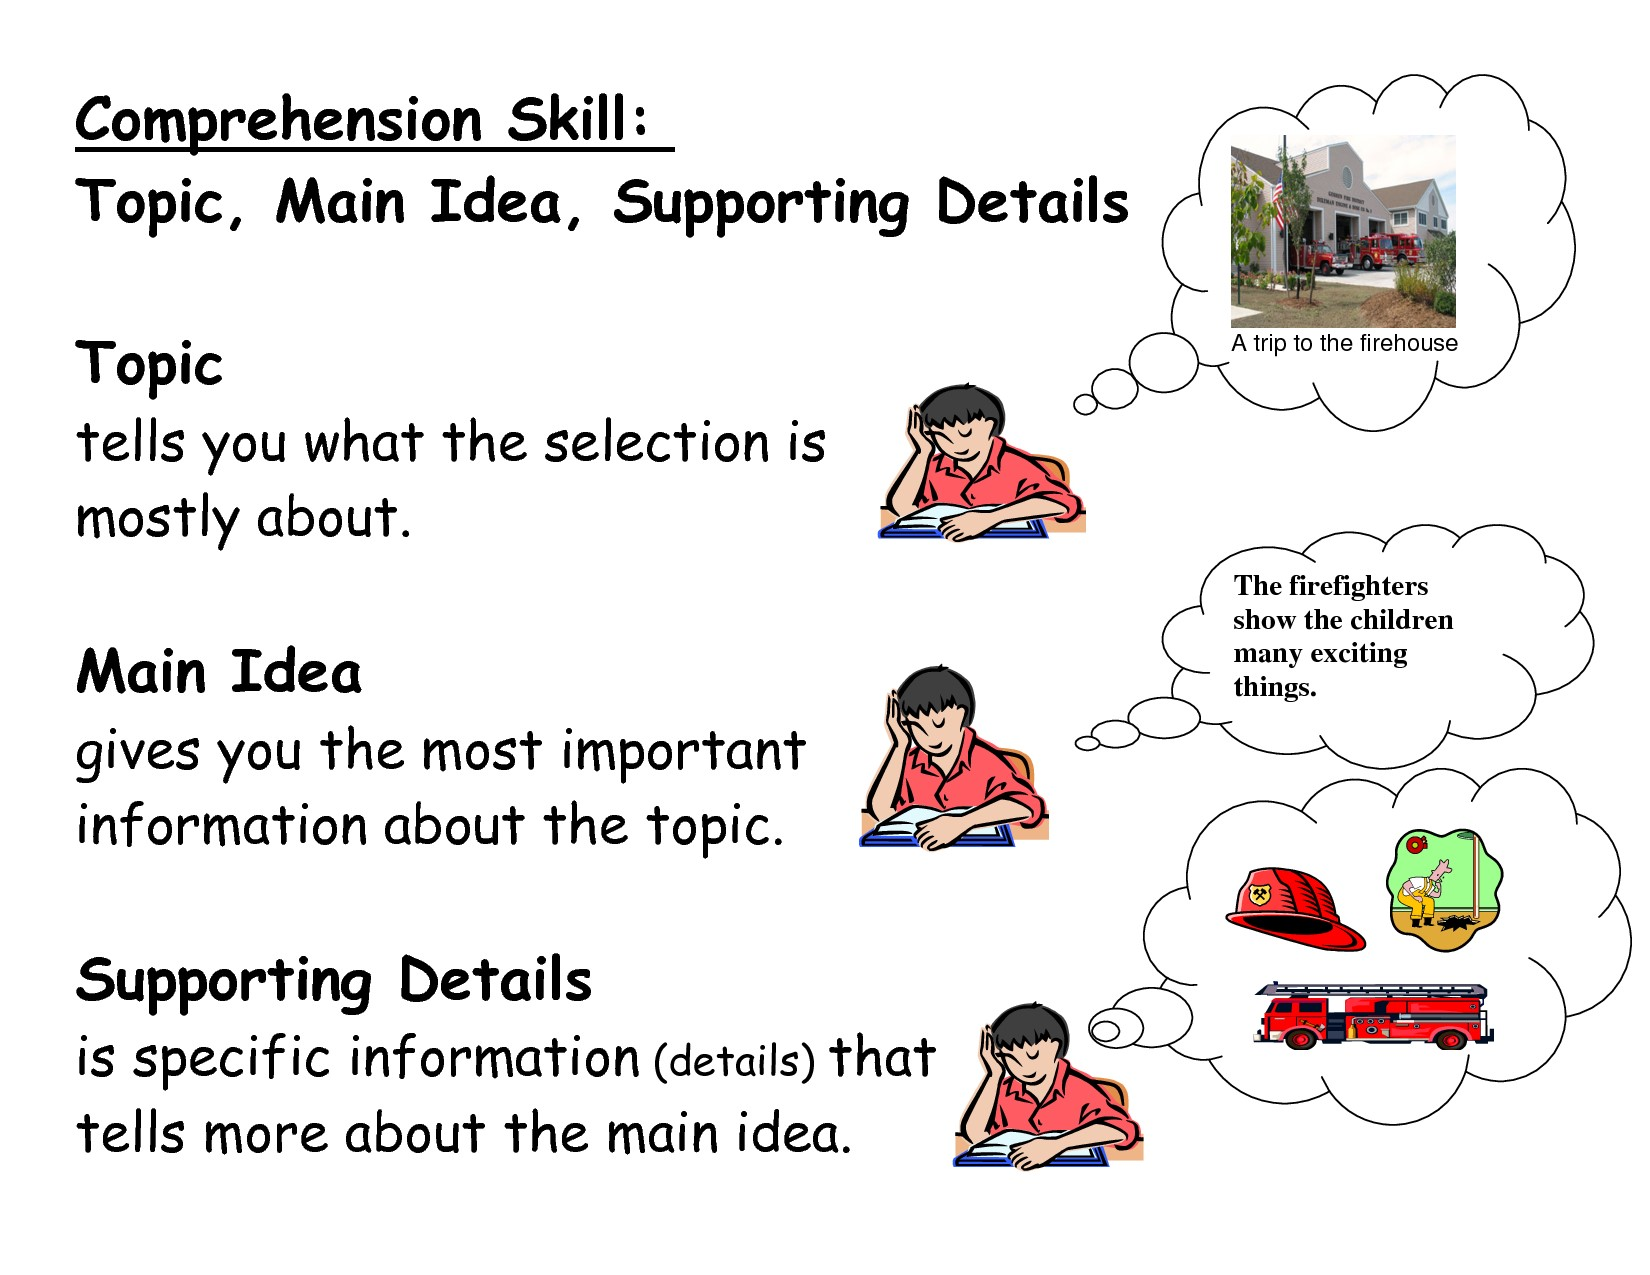 presentation on  steps anecdotes reasons descriptions or definitions that explain or prove the general main ideas stated in the topic sentence they support